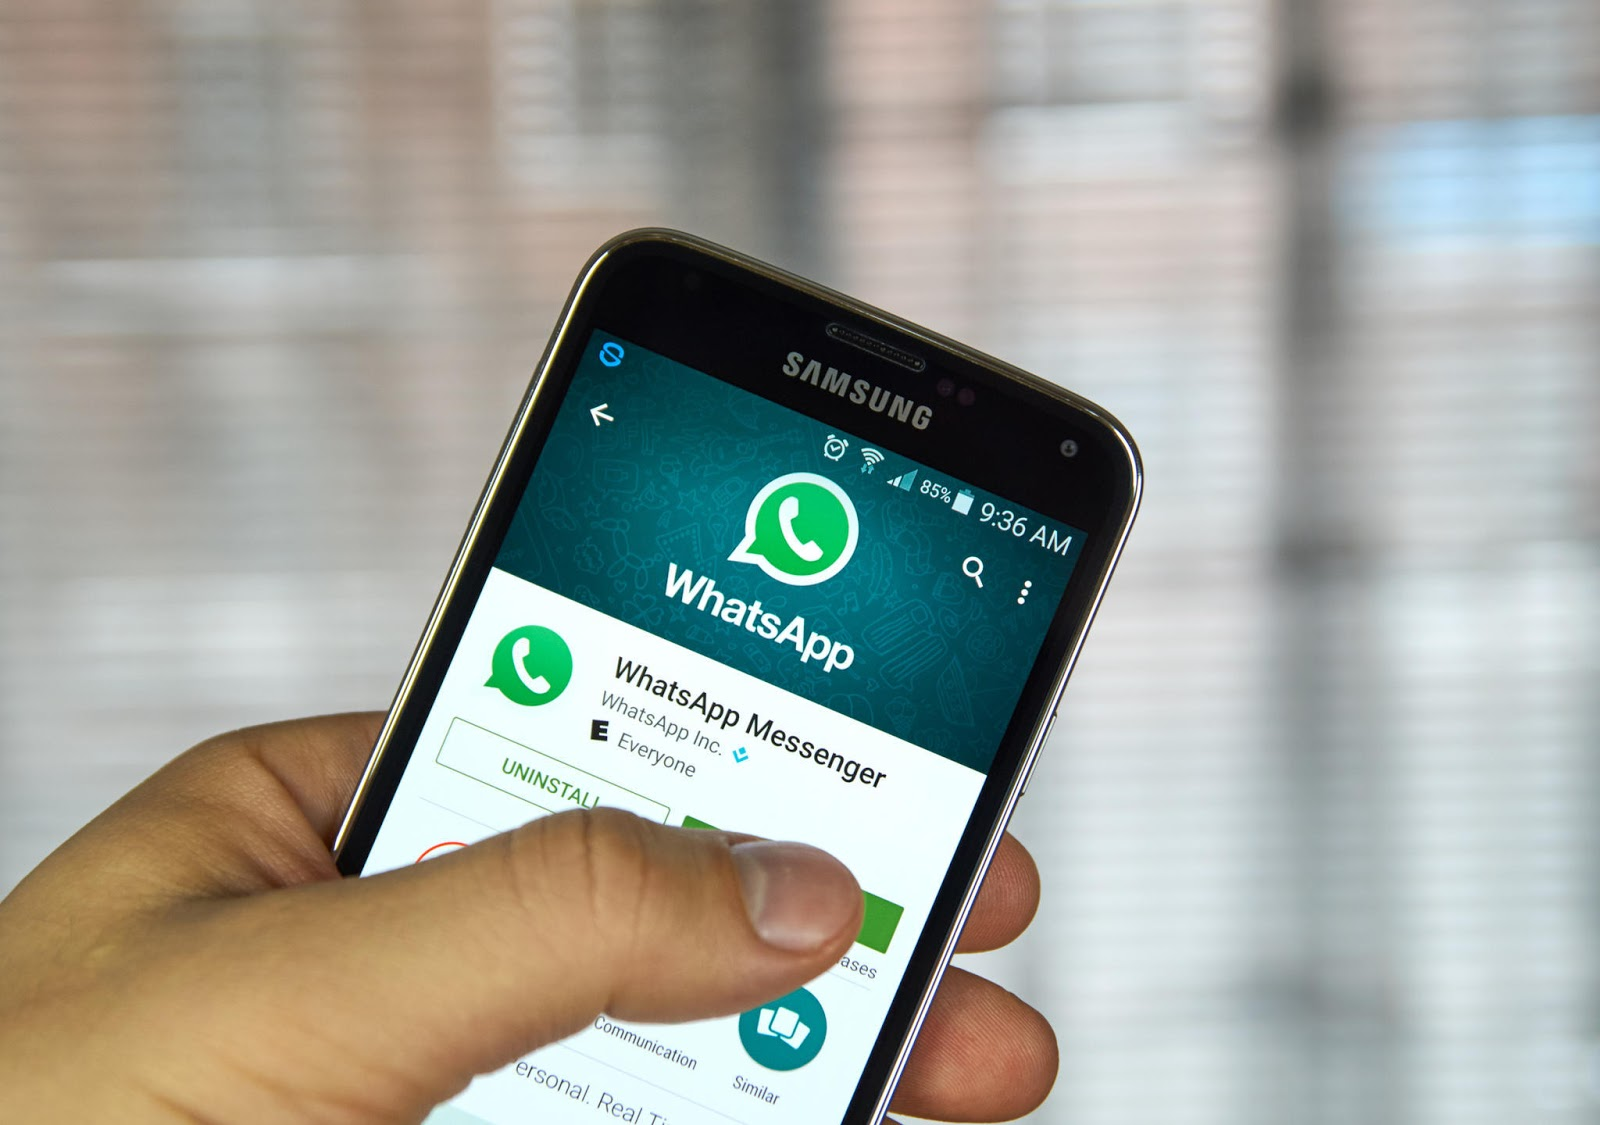 Facebook Overturned Its Decision To Sale Ads On WhatsApp